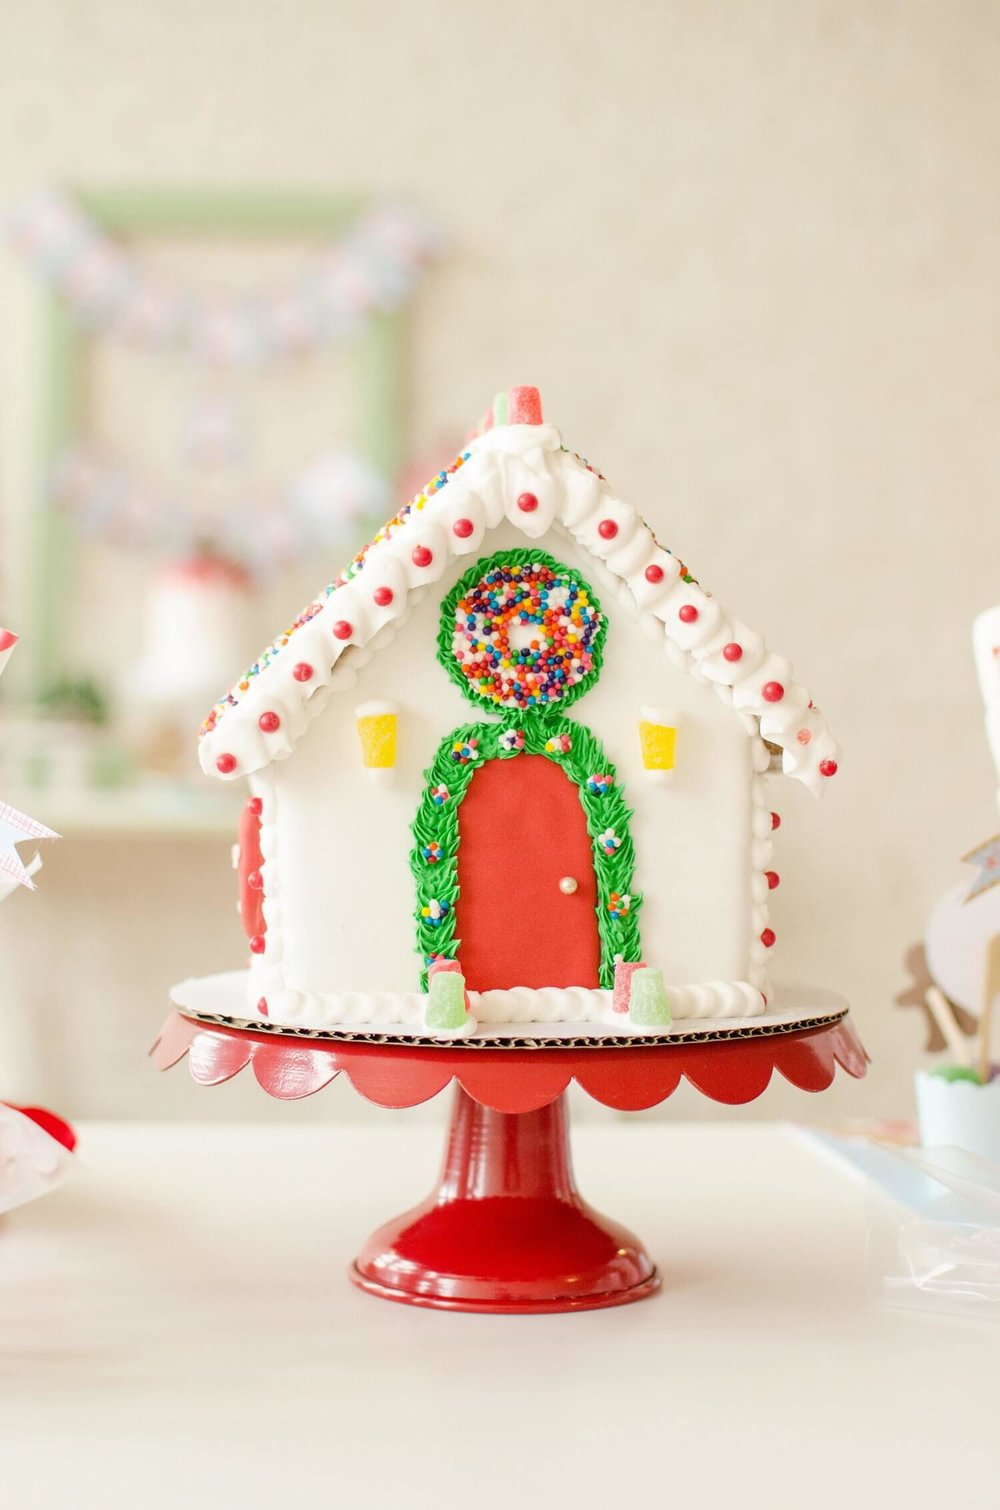 Gingerbread House Ideas and party decorations.